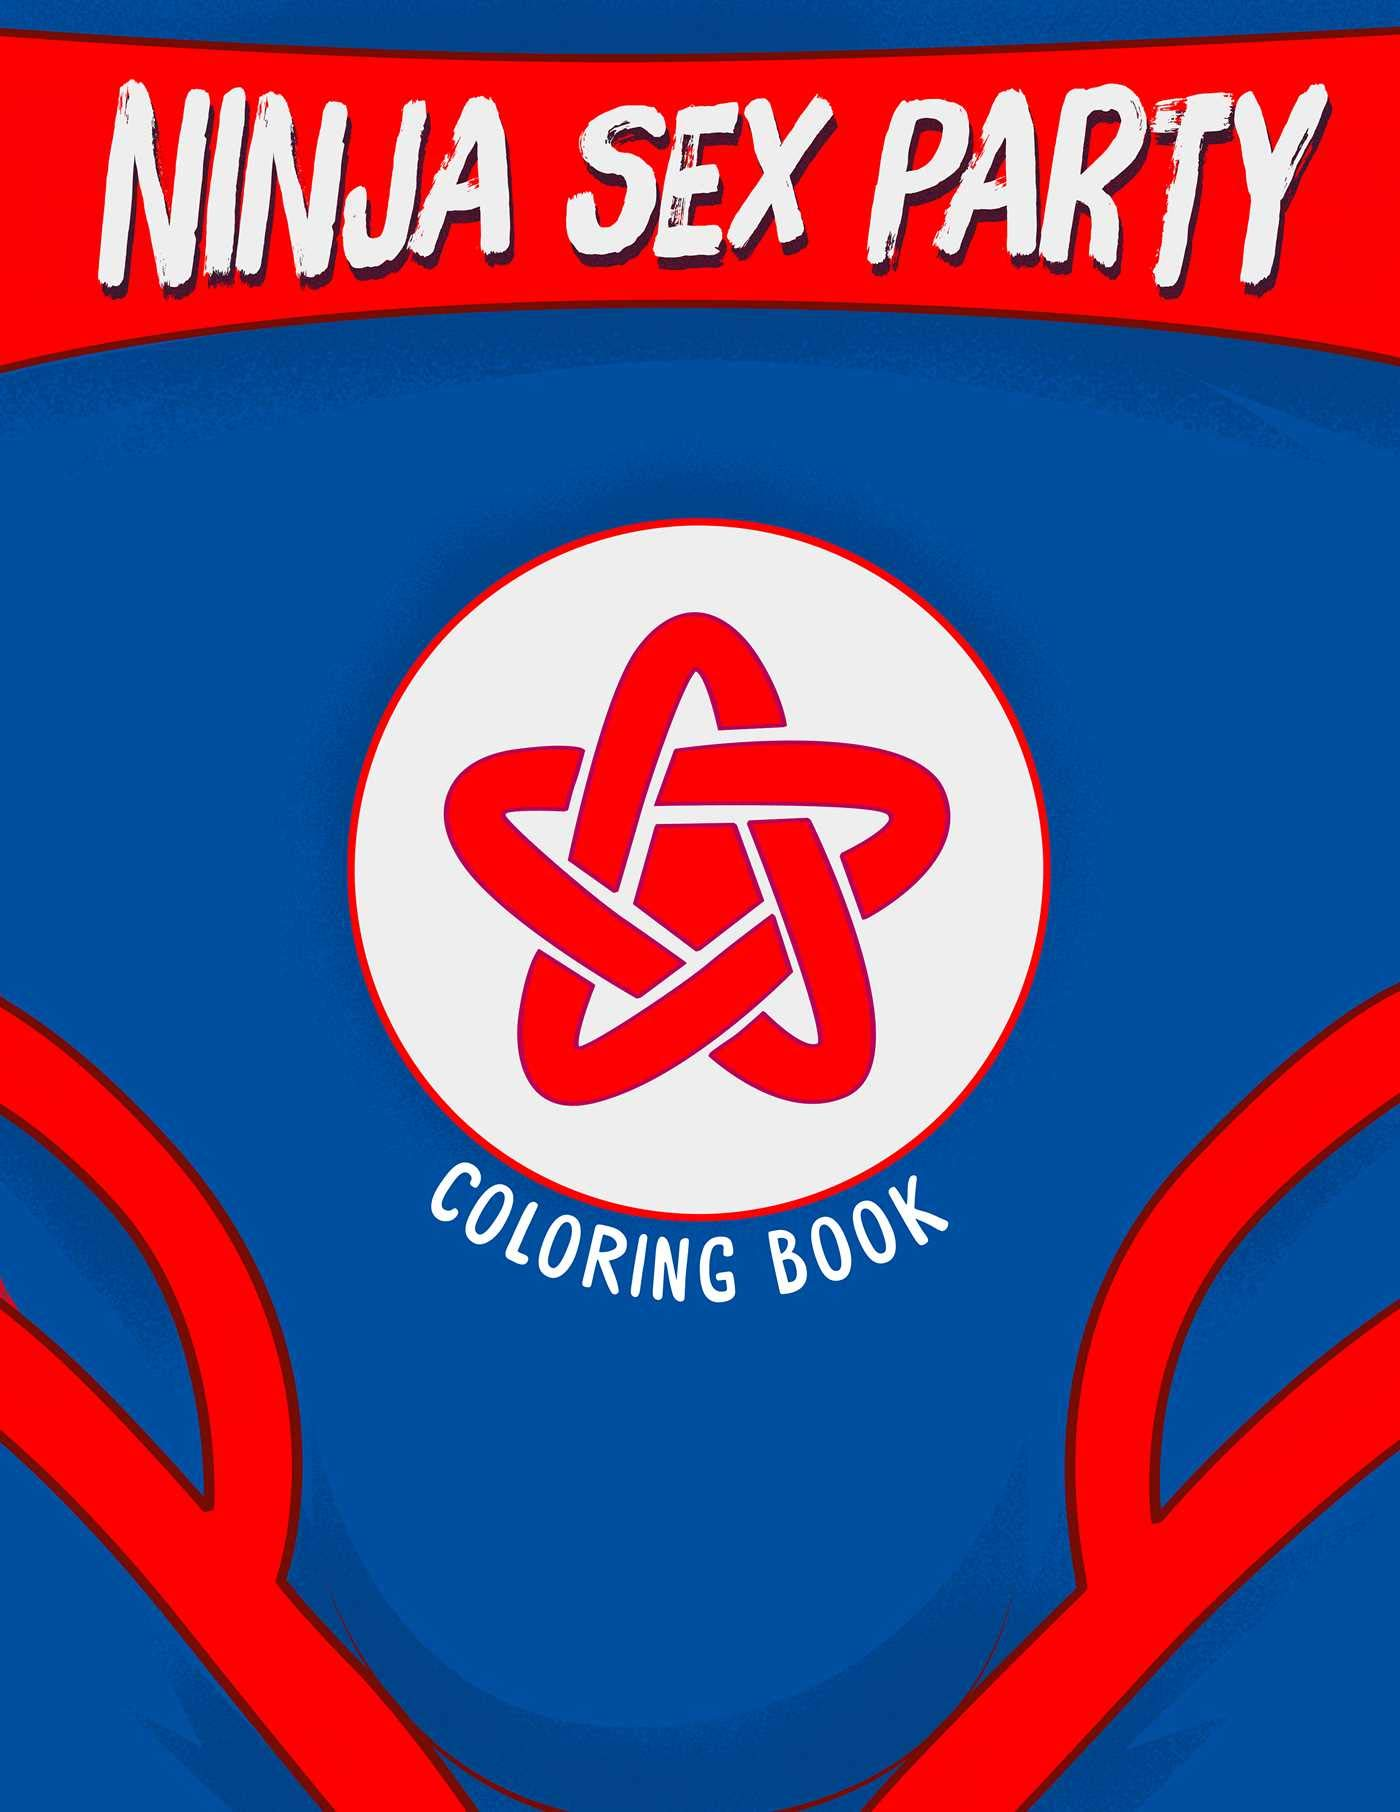 Amazon.com: Ninja Sex Party Coloring Book (9781970047073 ...